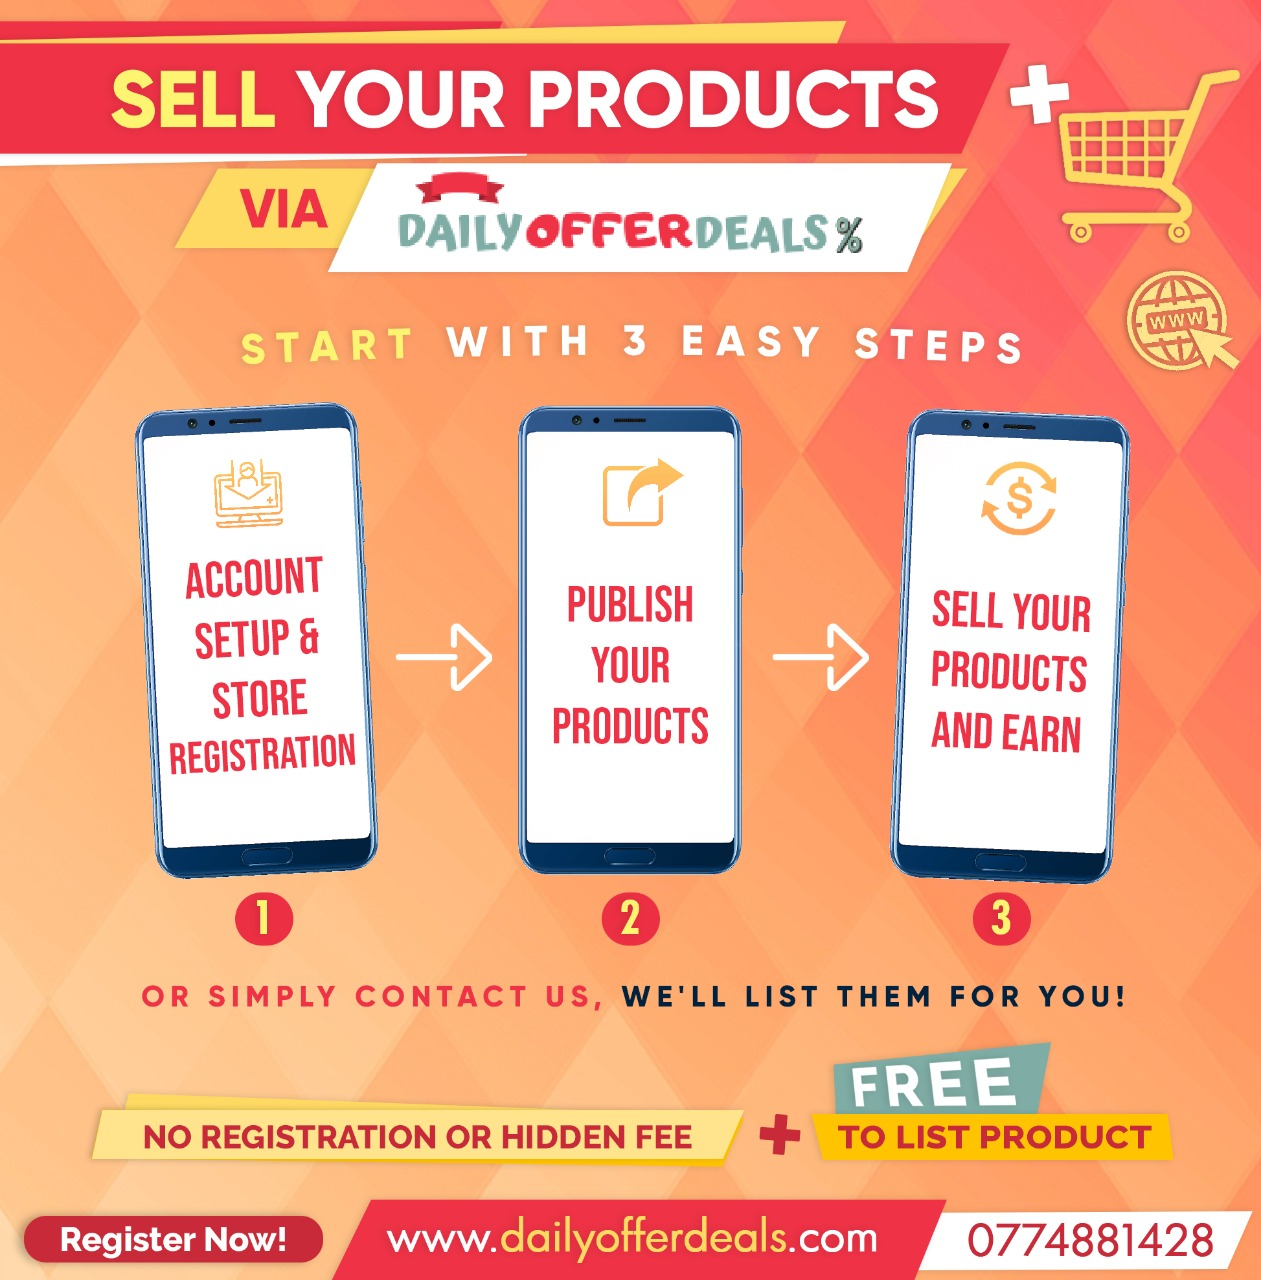 How to sell on daily offer deals